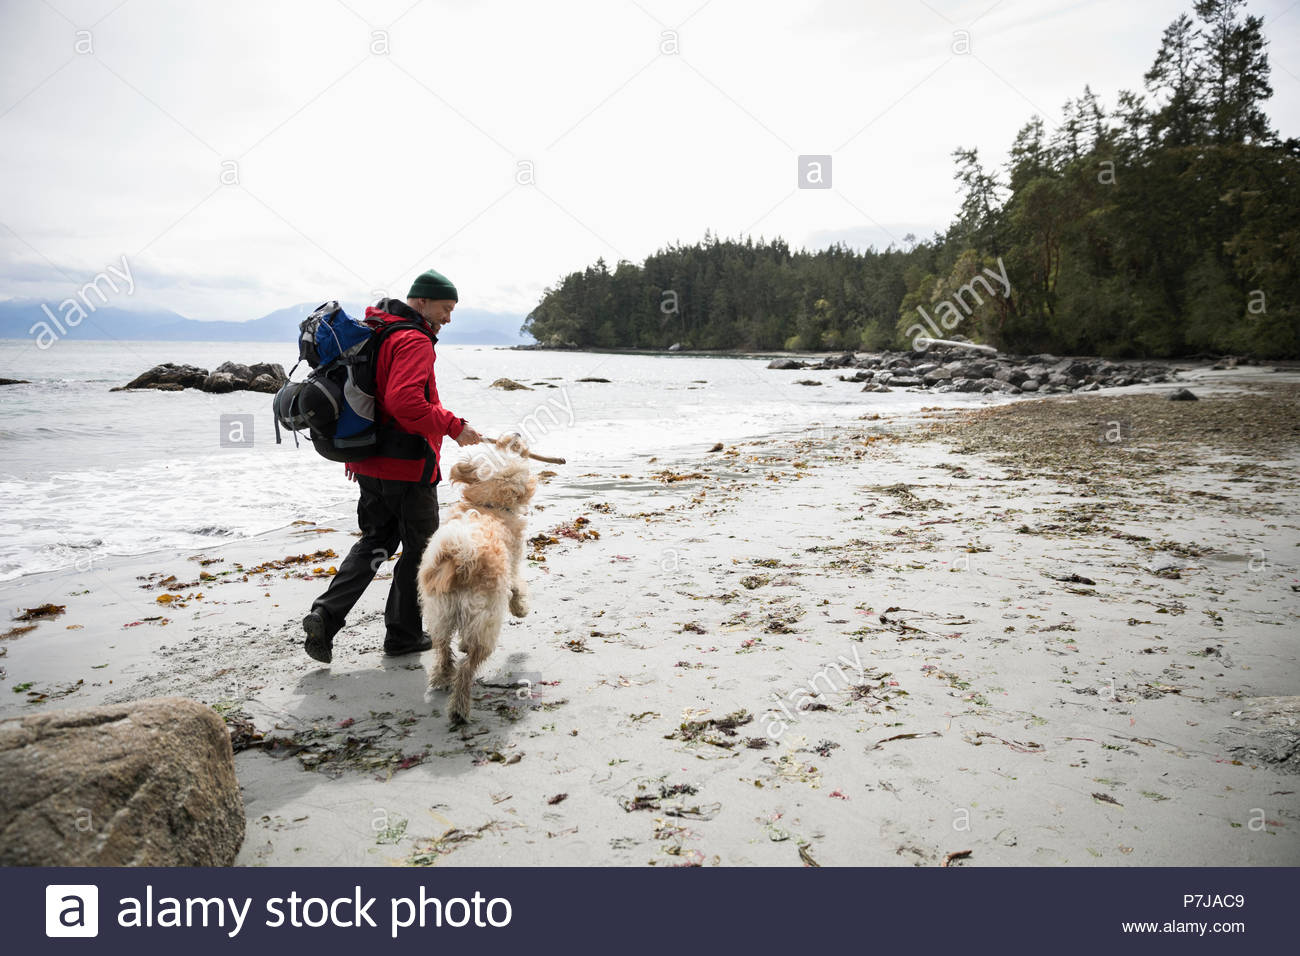 Man with dog backpacking on rugged beach - Stock Image